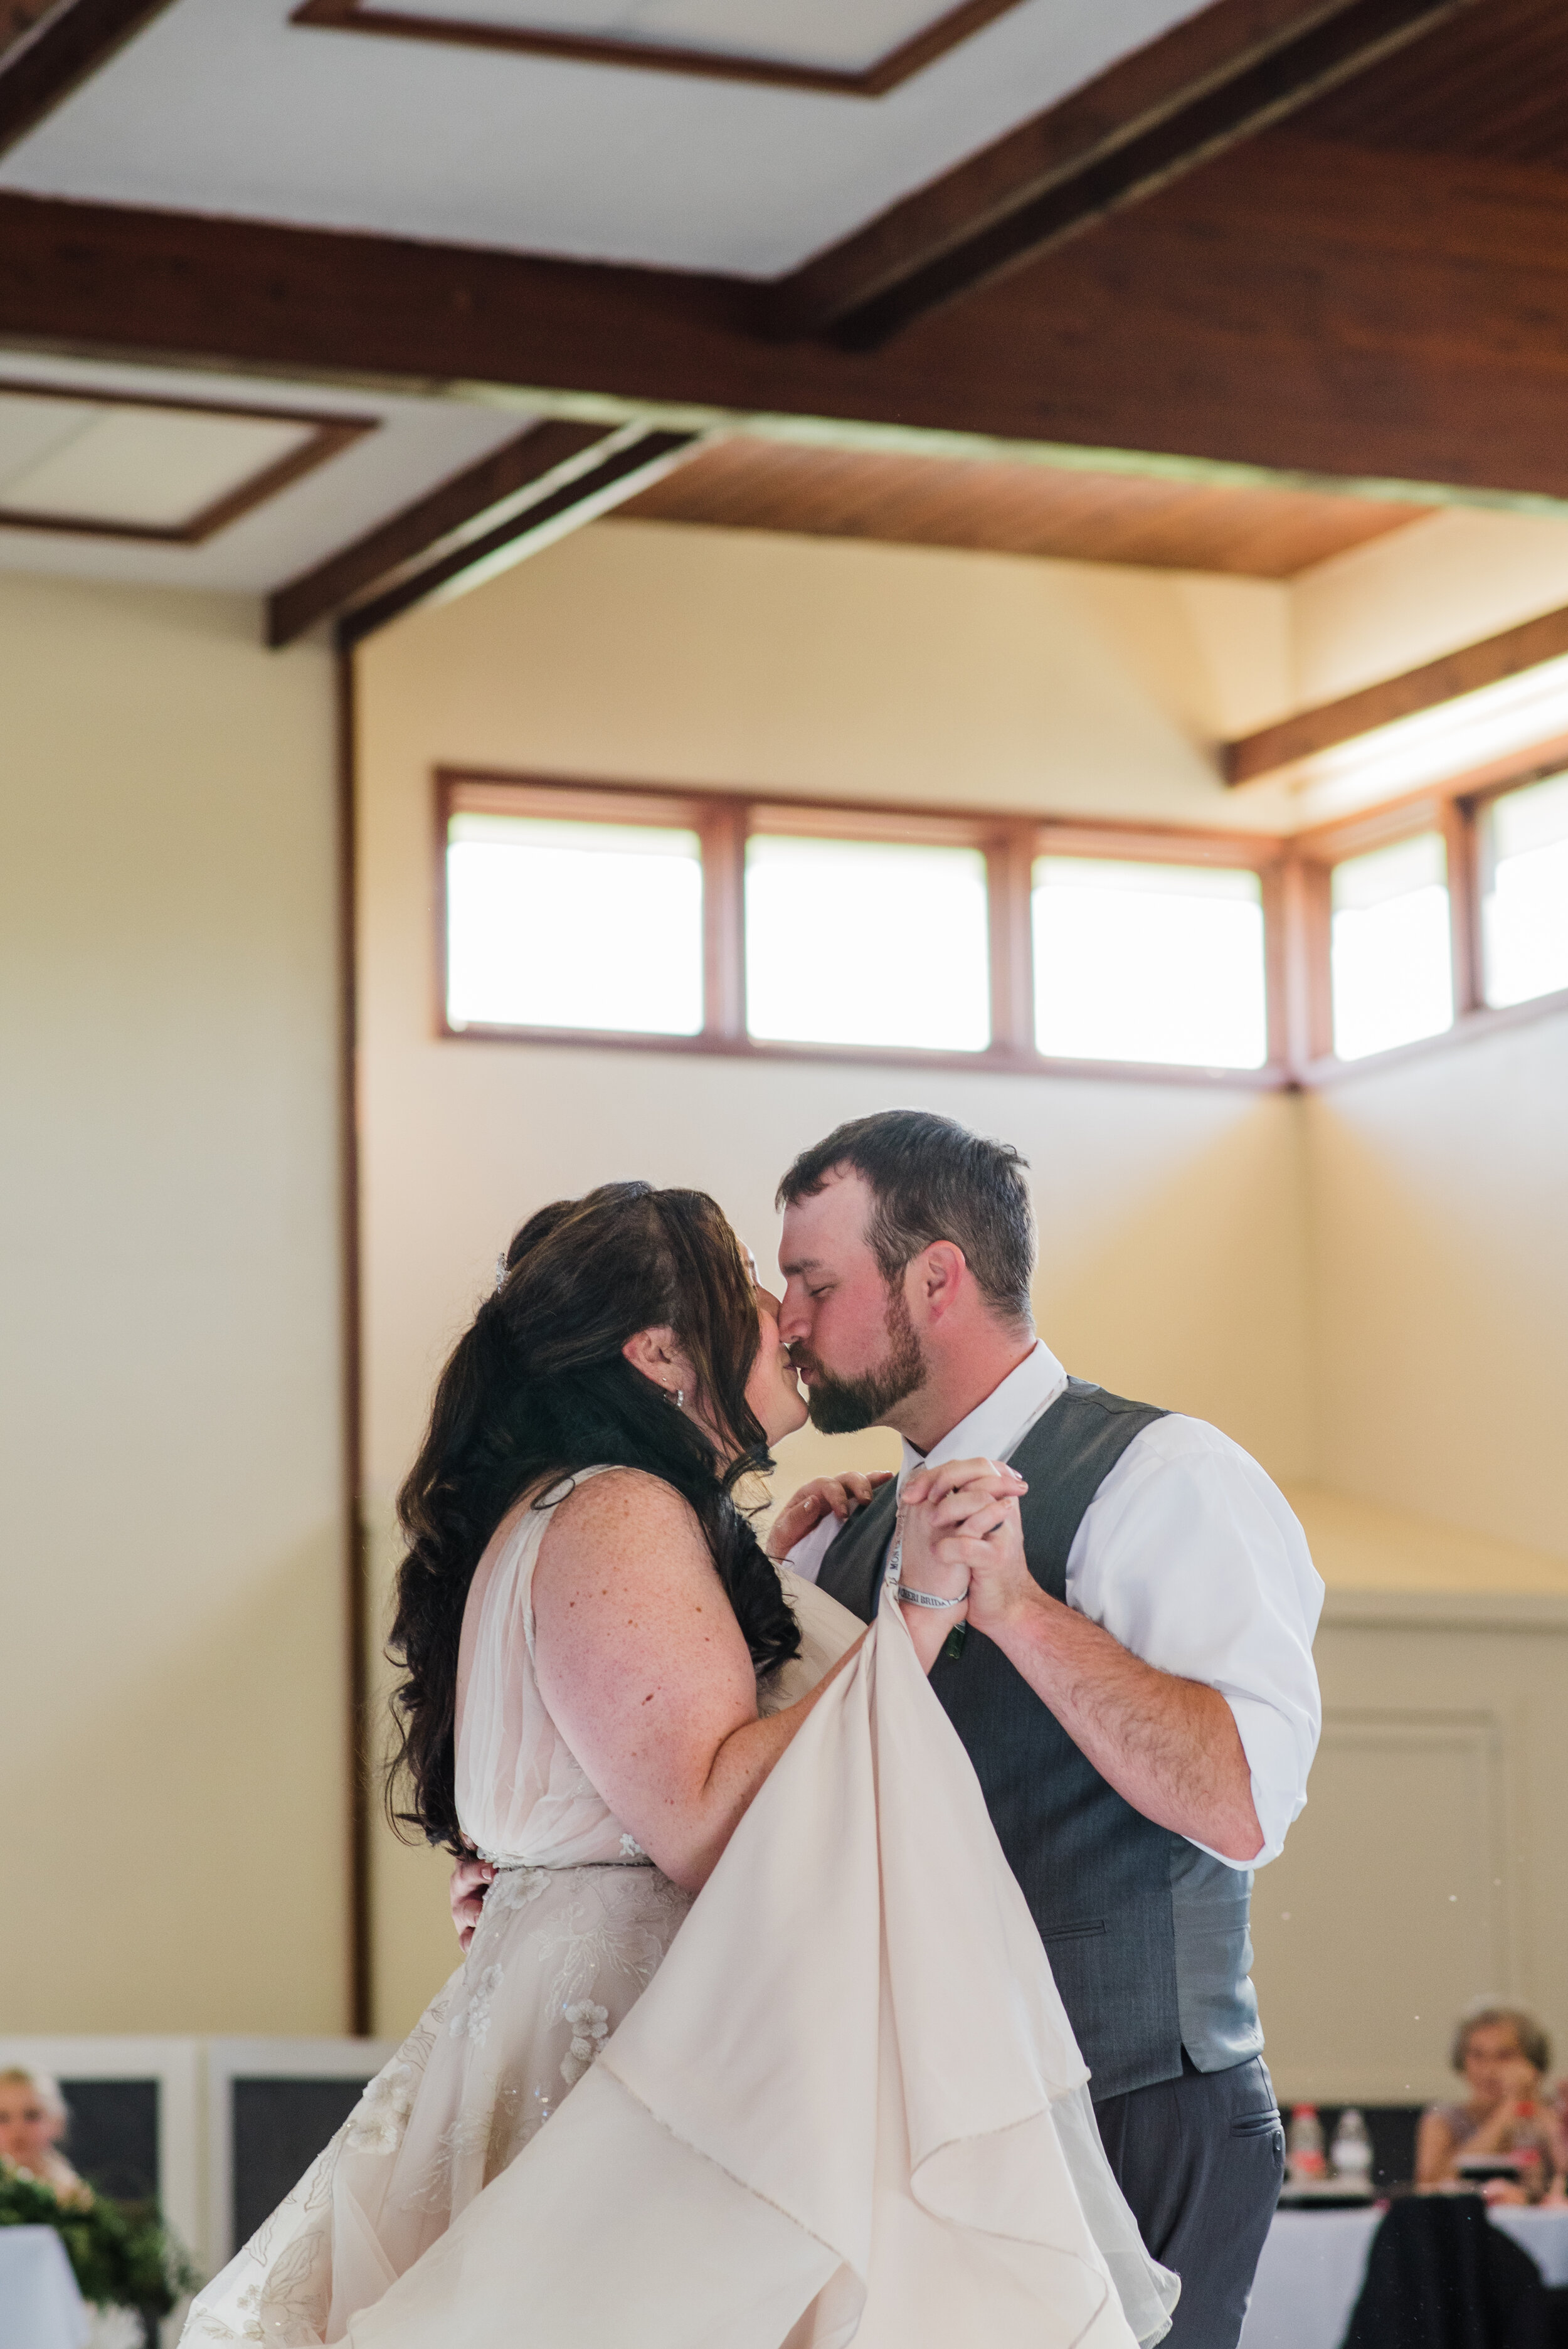 Wedding couple kissing during their first dance.